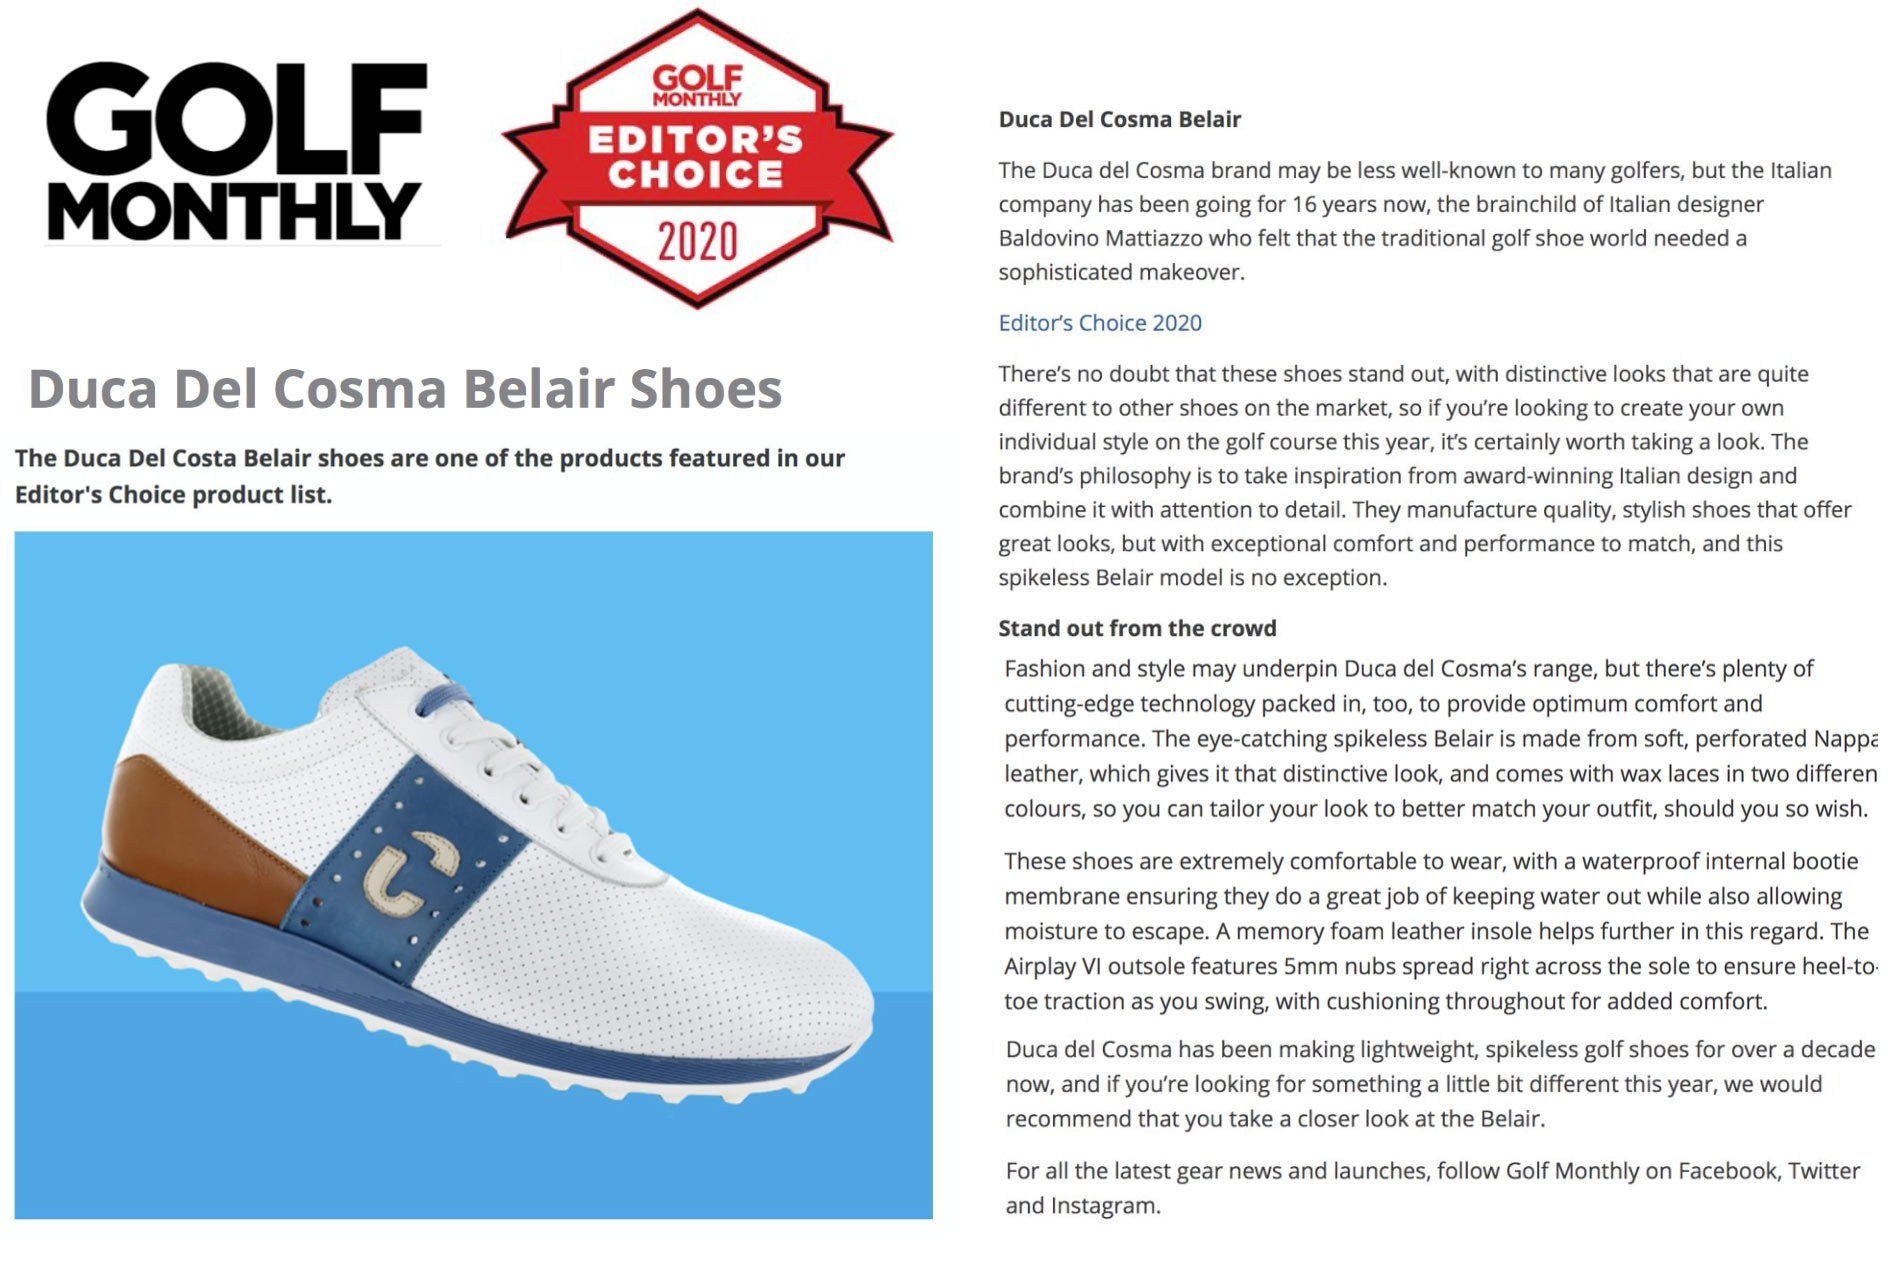 Golf Monthly Editor's Choice Awards article about the Duca del Cosma Belair shoe